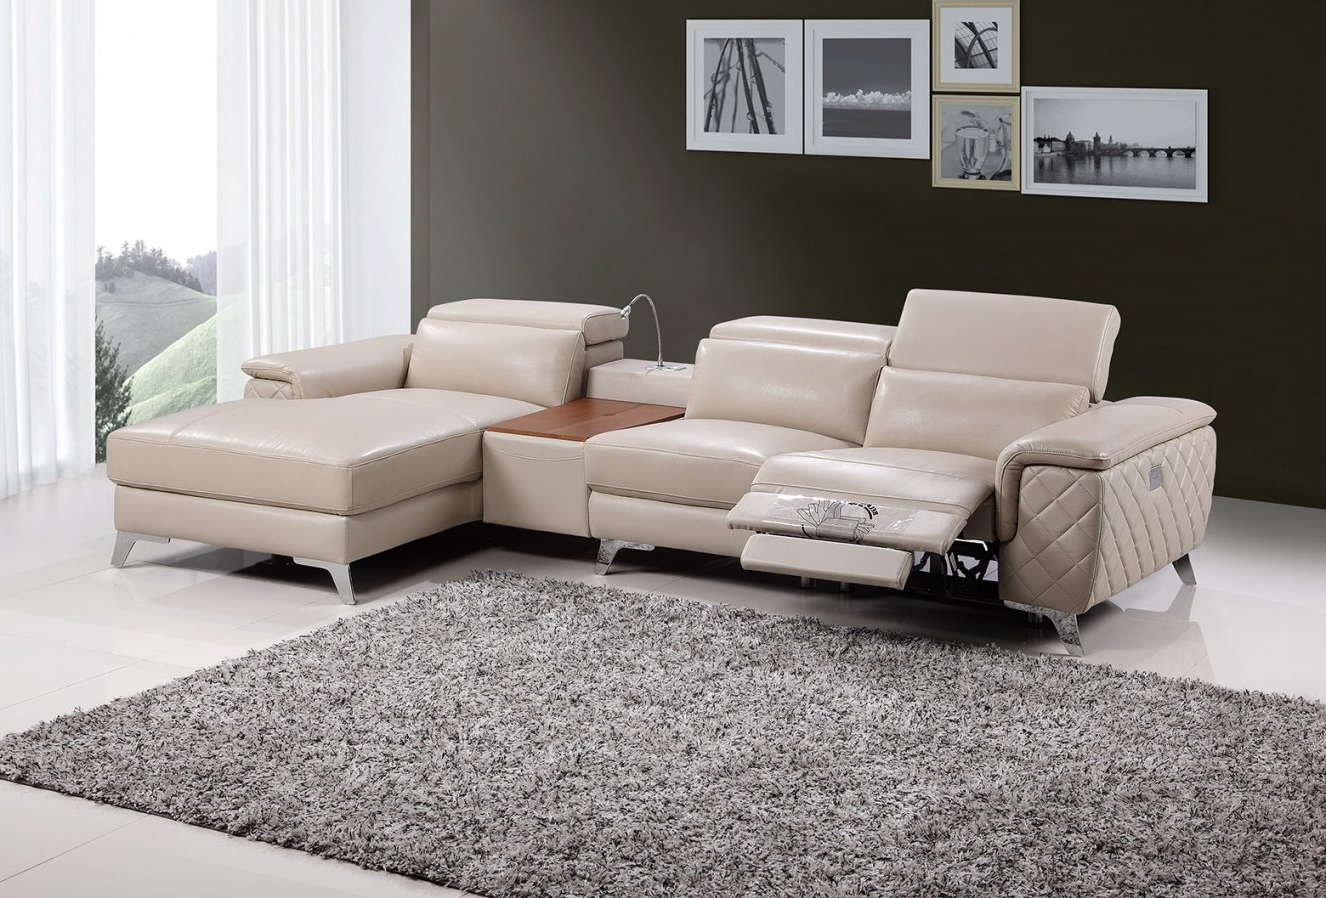 Most Up To Date Recliner Chaise Lounges With Chaise Lounge Sofa With Recliner (View 10 of 15)